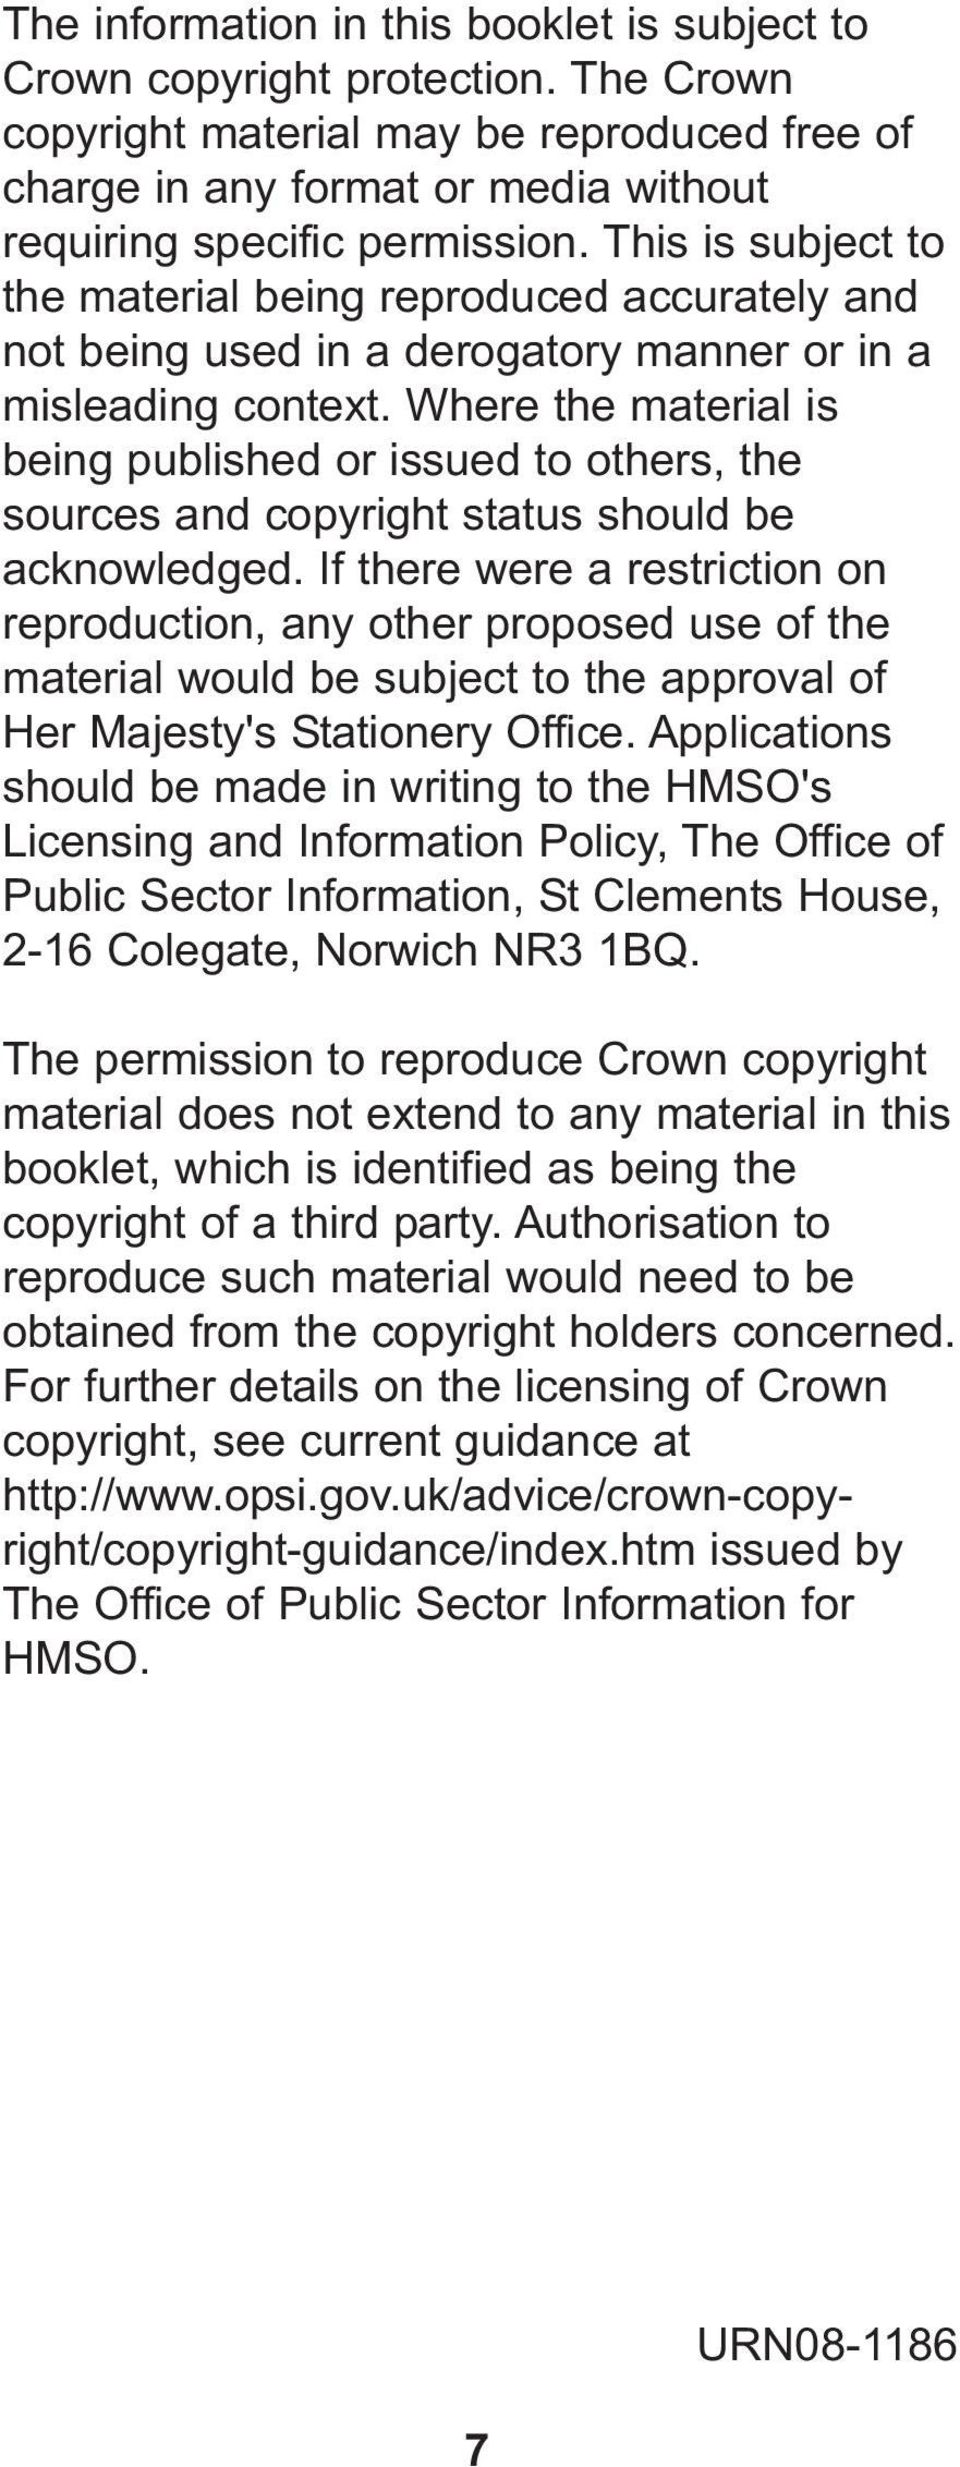 Where the material is being published or issued to others, the sources and copyright status should be acknowledged.